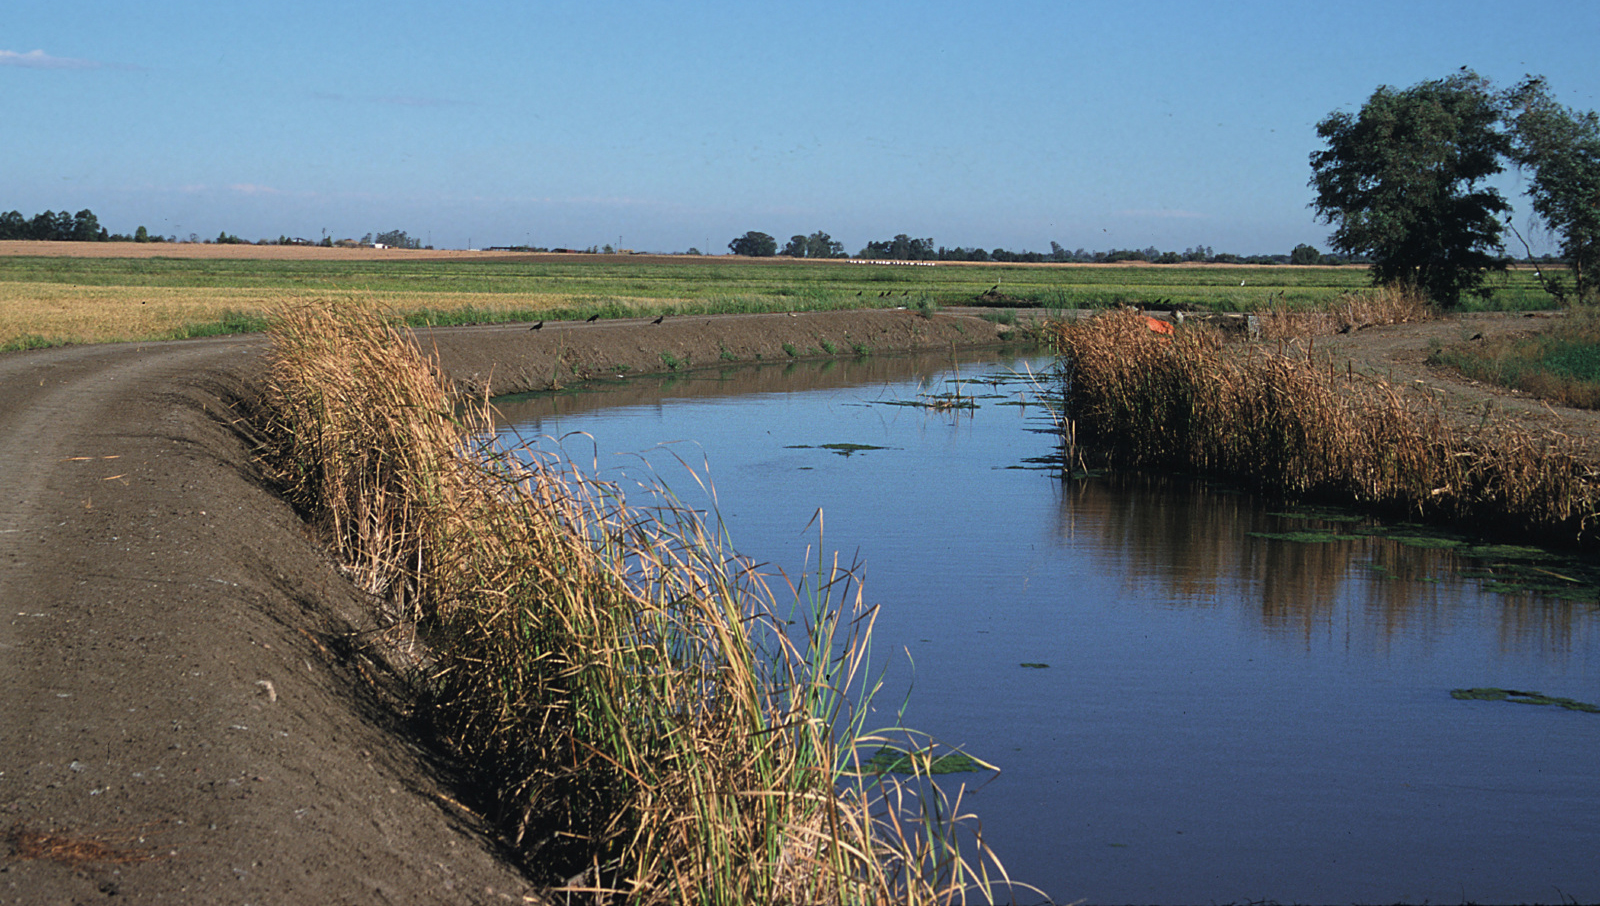 Water in recovery ditch near rice field with vegetation lining the sides